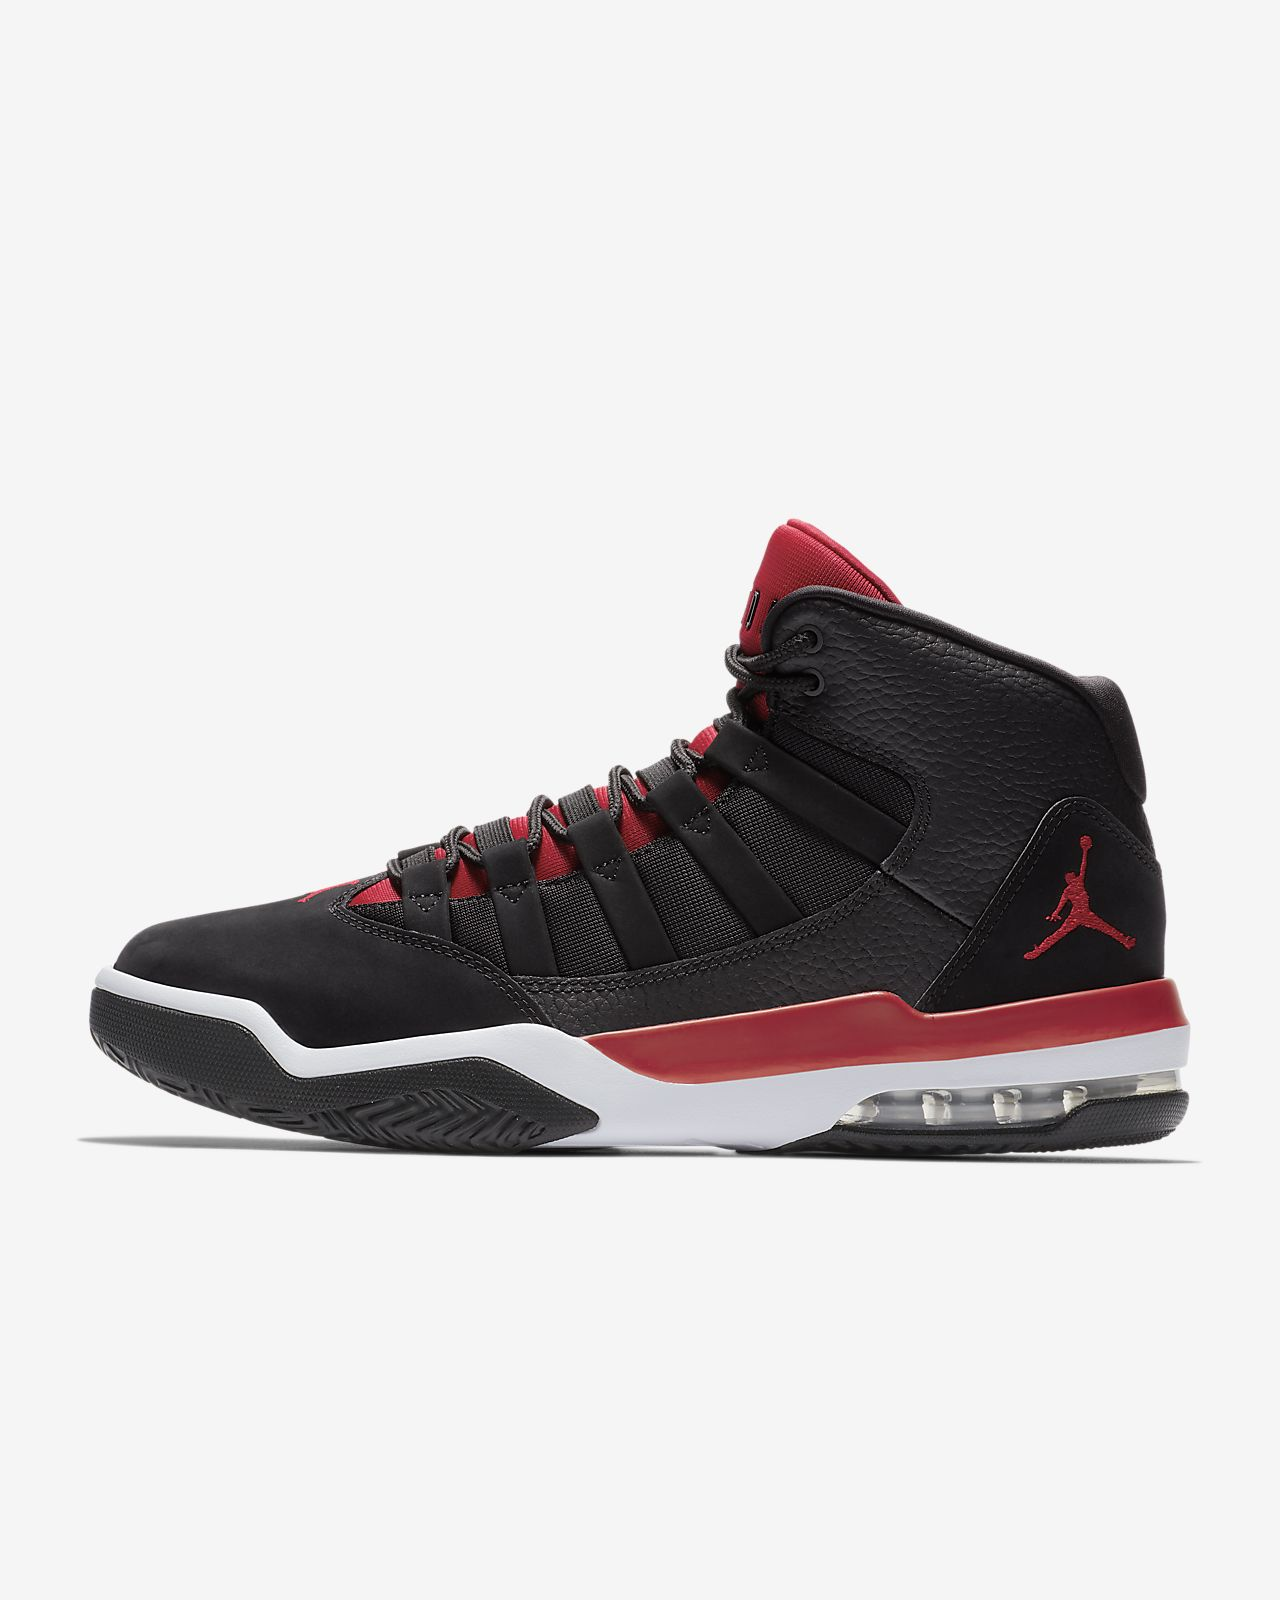 half off 33ddc 1e2c9 ... Jordan Max Aura Men s Basketball Shoe